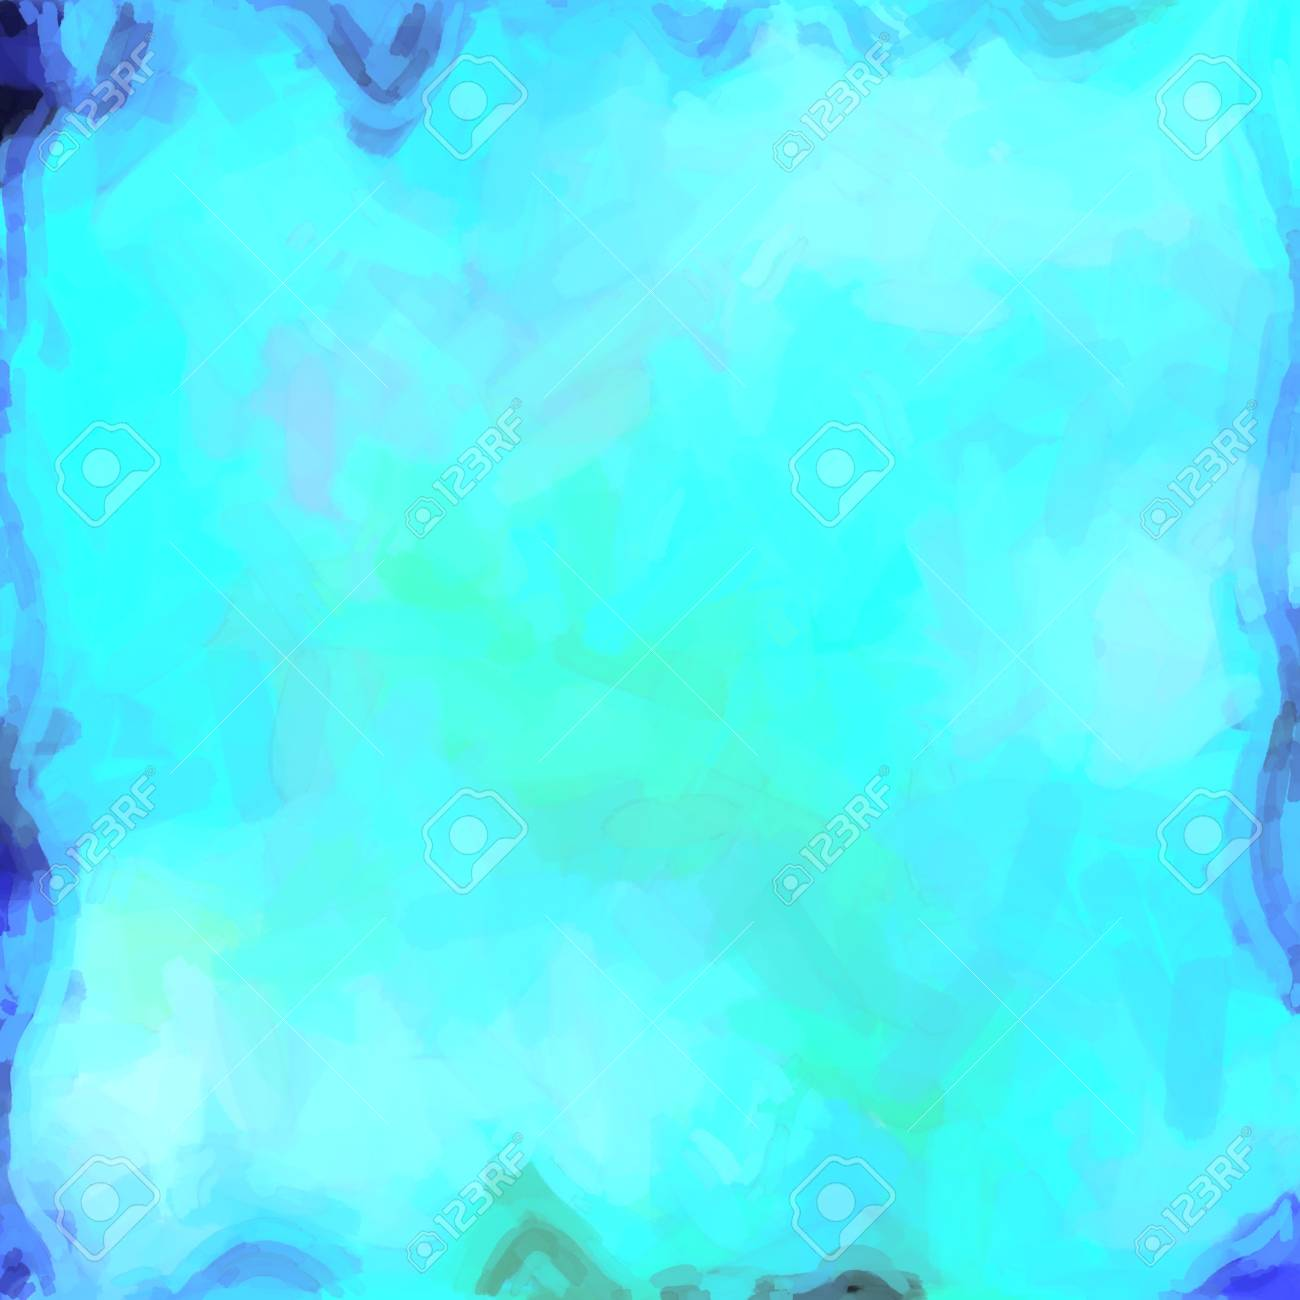 abstract color background of mixed colors like watercolor paint. Spots of light gently mixed on the square backdrop Stock Photo - 18742275